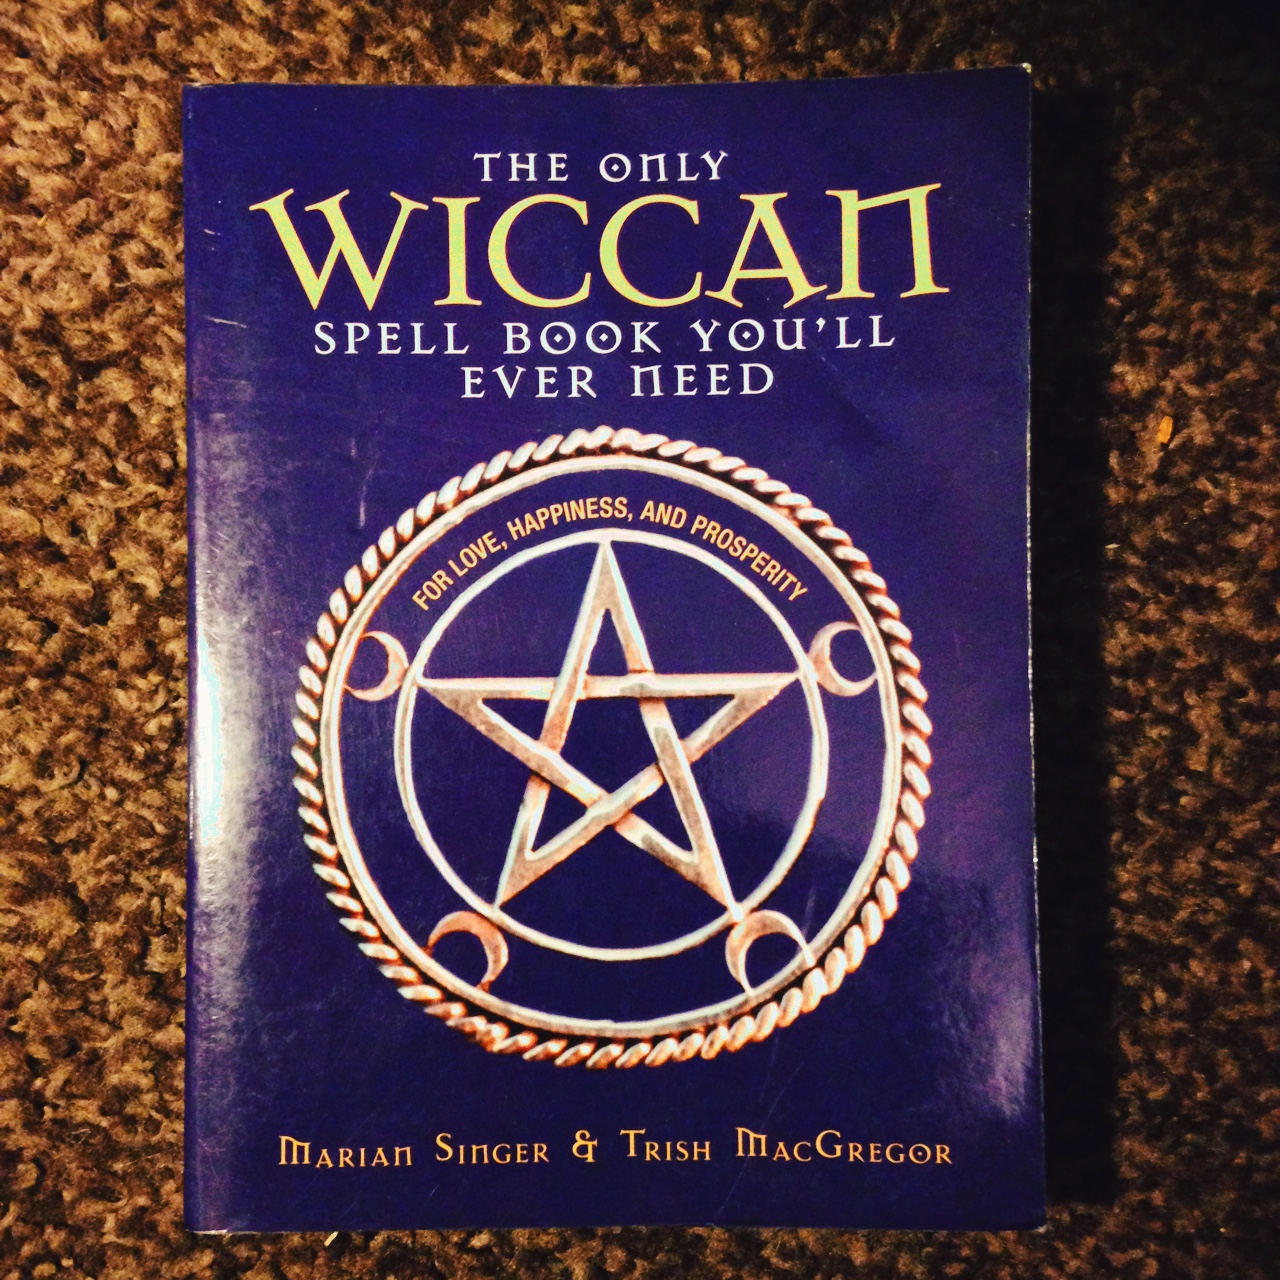 Wiccan spell book with a few signs of wear #wicca    - Depop